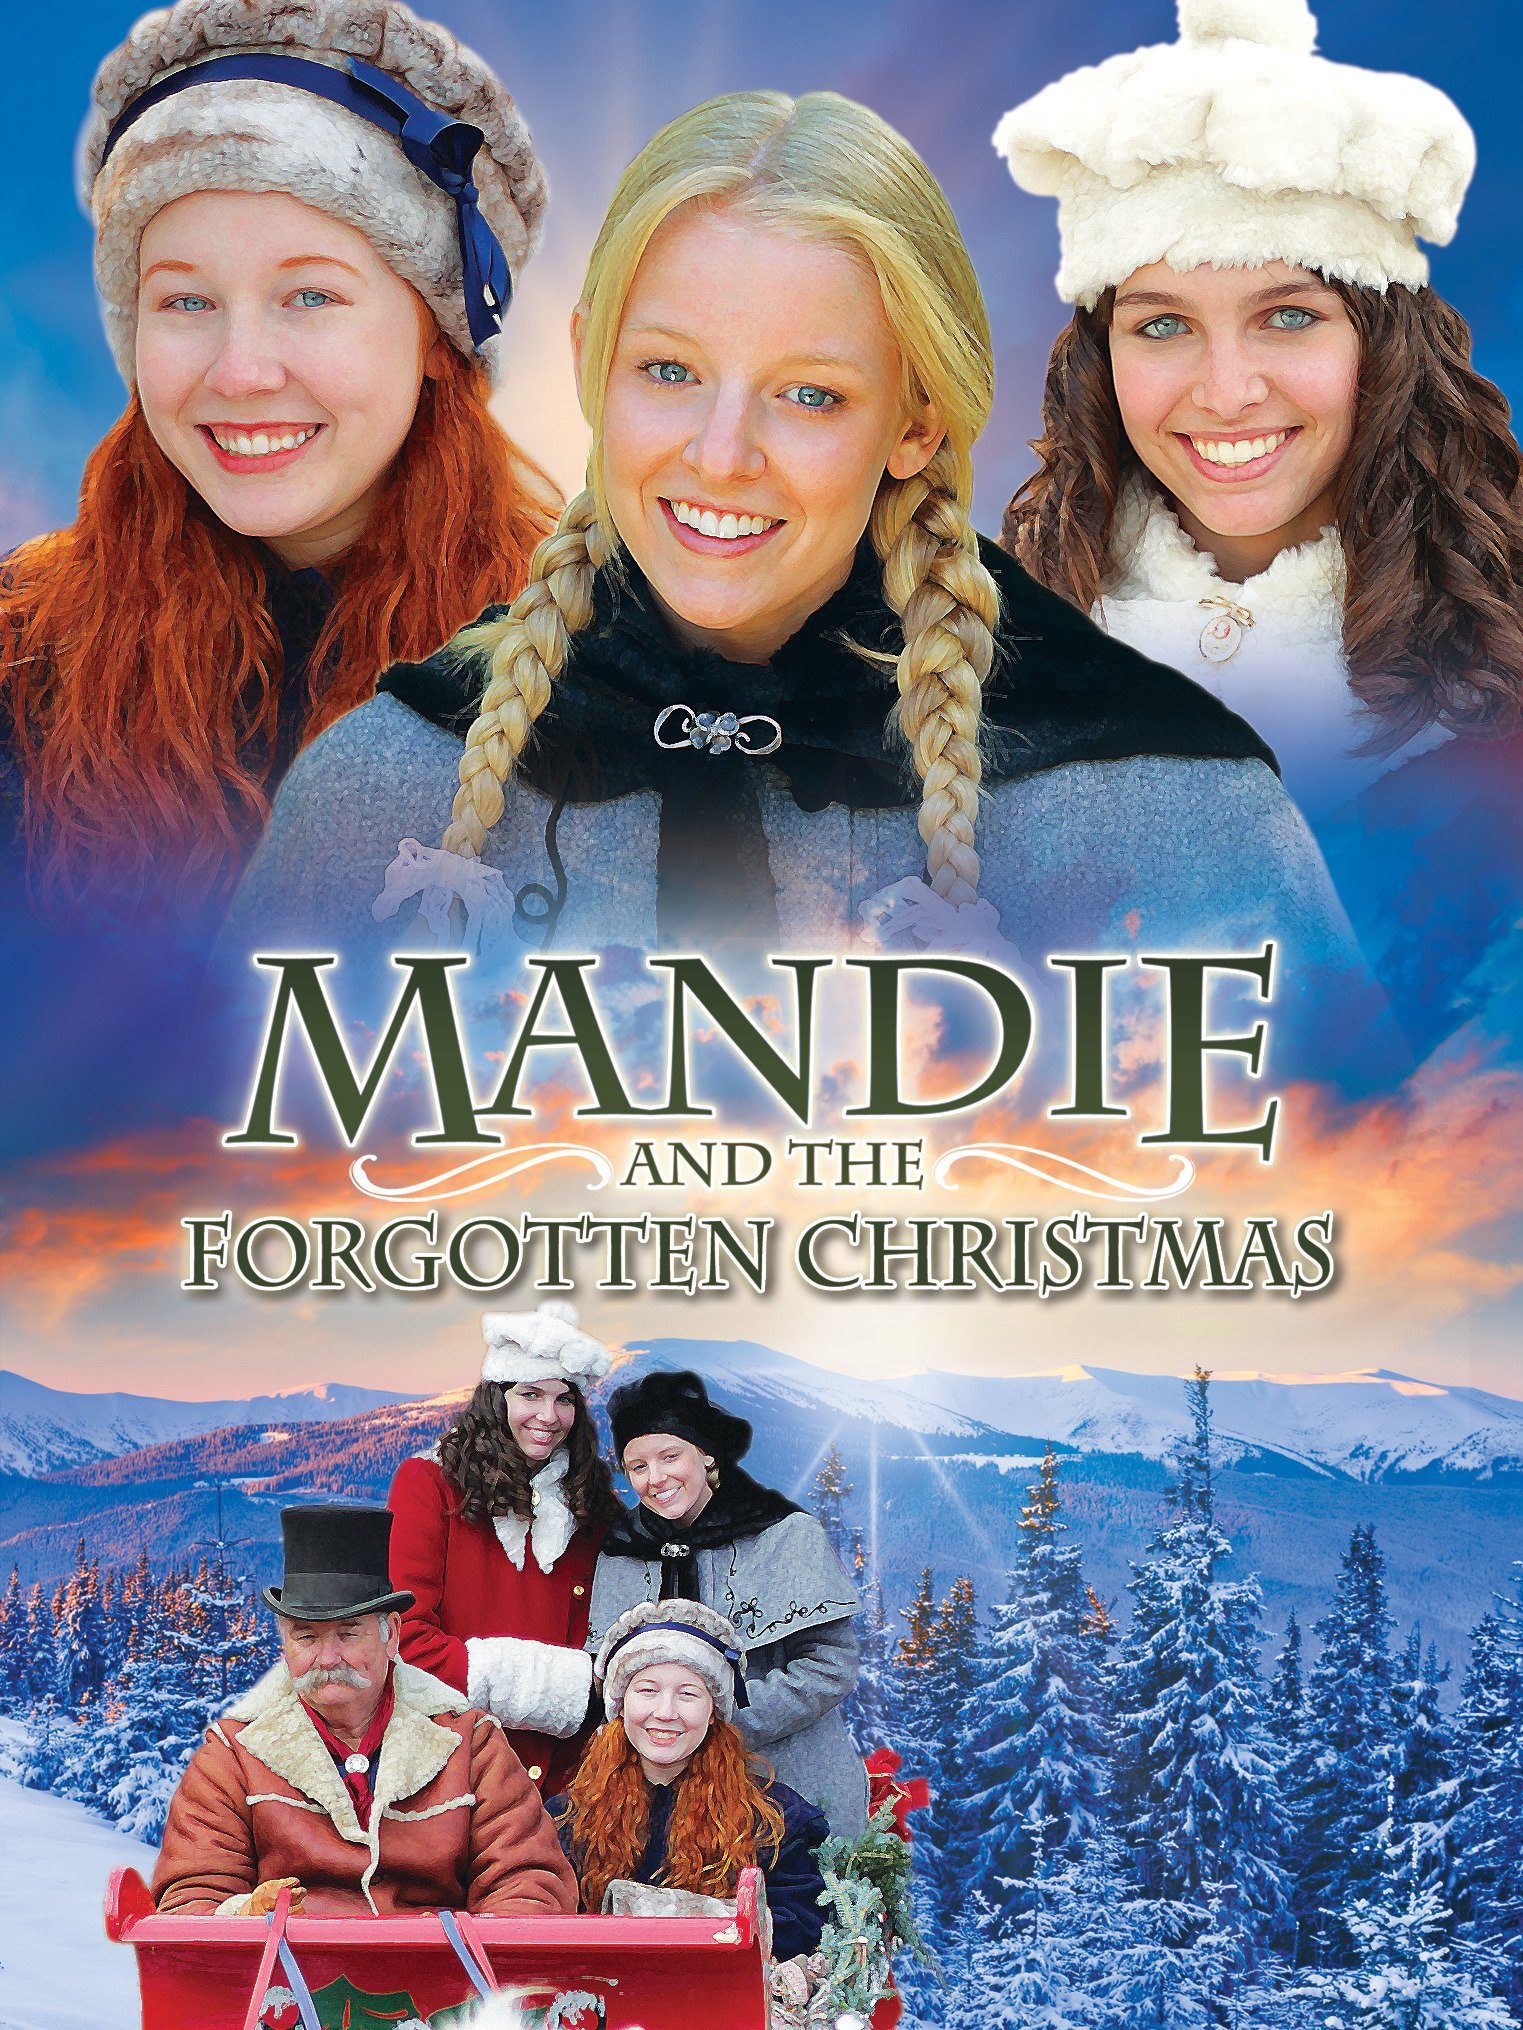 Amazon.com: Mandie And The Forgotten Christmas: Kelly Washington ...